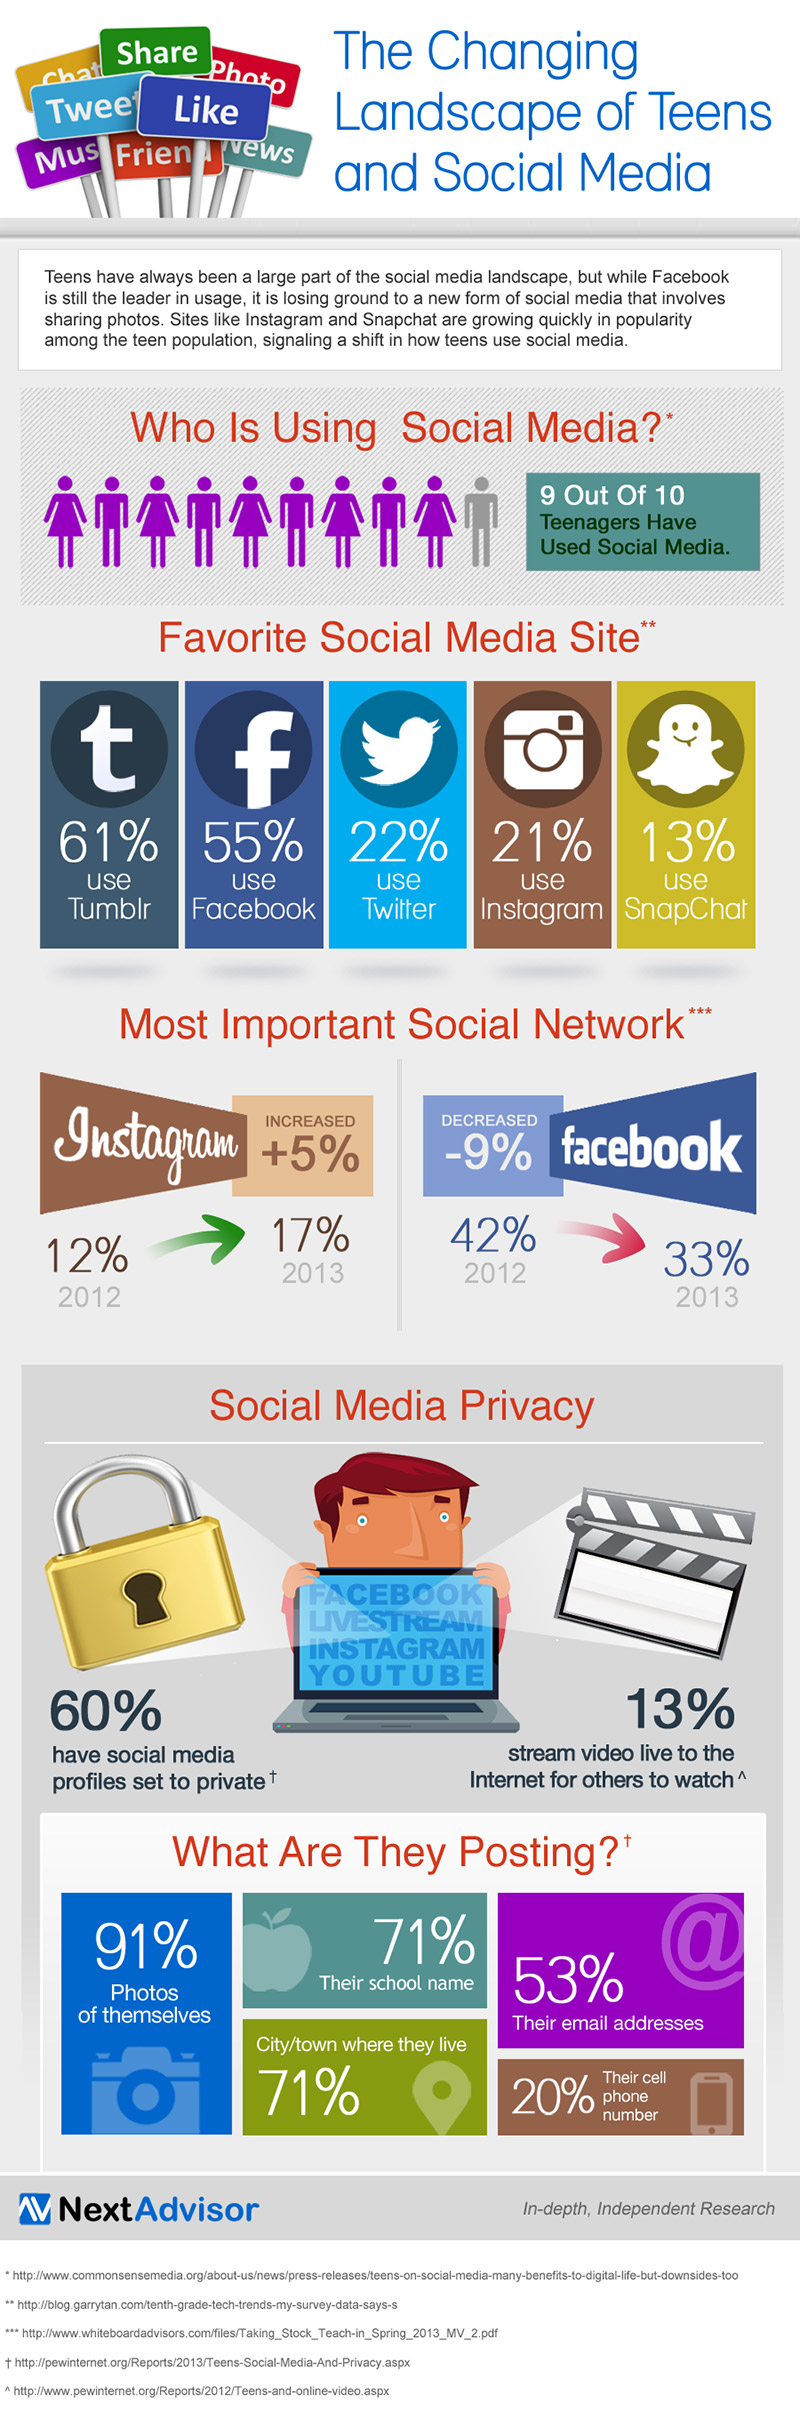 9na-infographic-teensocialmedia-FINAL-900px.jpg